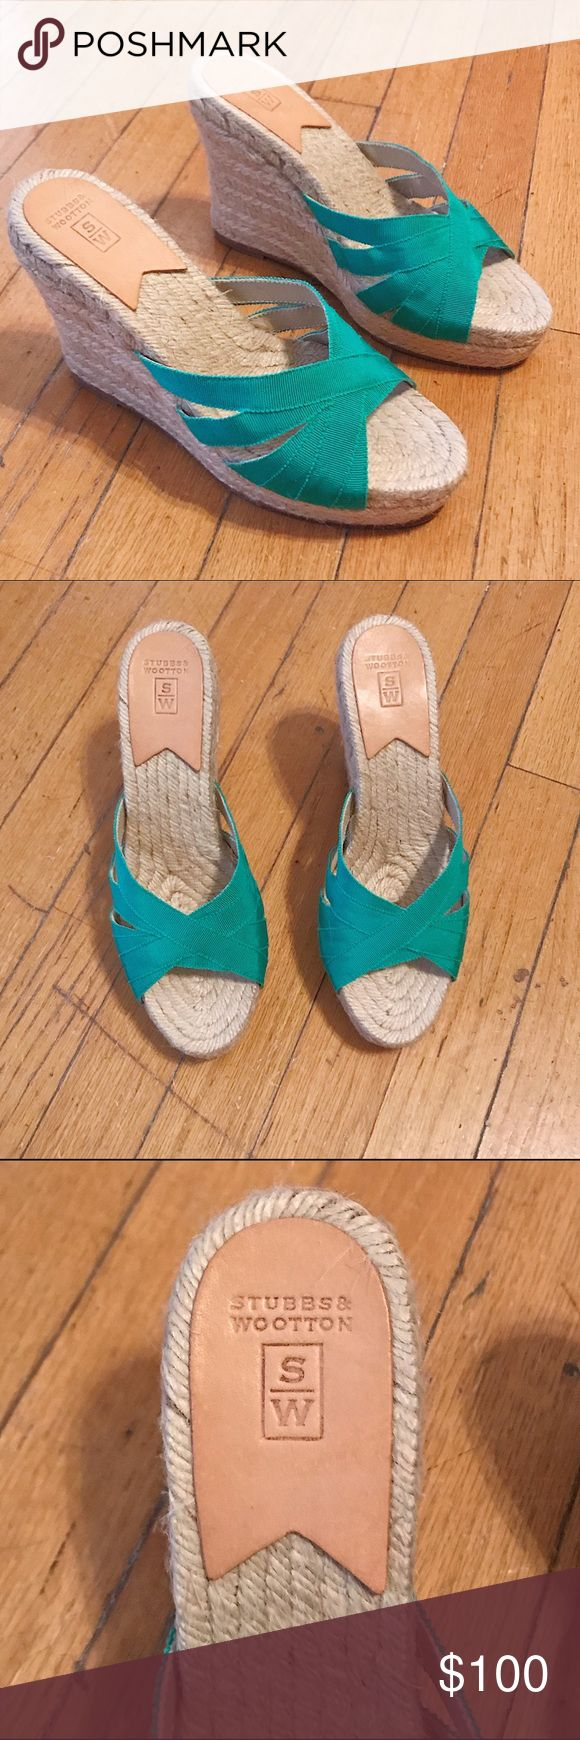 NWOT Stubbs & Wootton Green Espadrilles Sandals These sandals are brand new - never been worn. Green grosgrain ribbon with jute lower. Leather soles. 5 inch wedge heel. Super cute and perfect for a beach getaway! Stubbs & Wootton Shoes Wedges